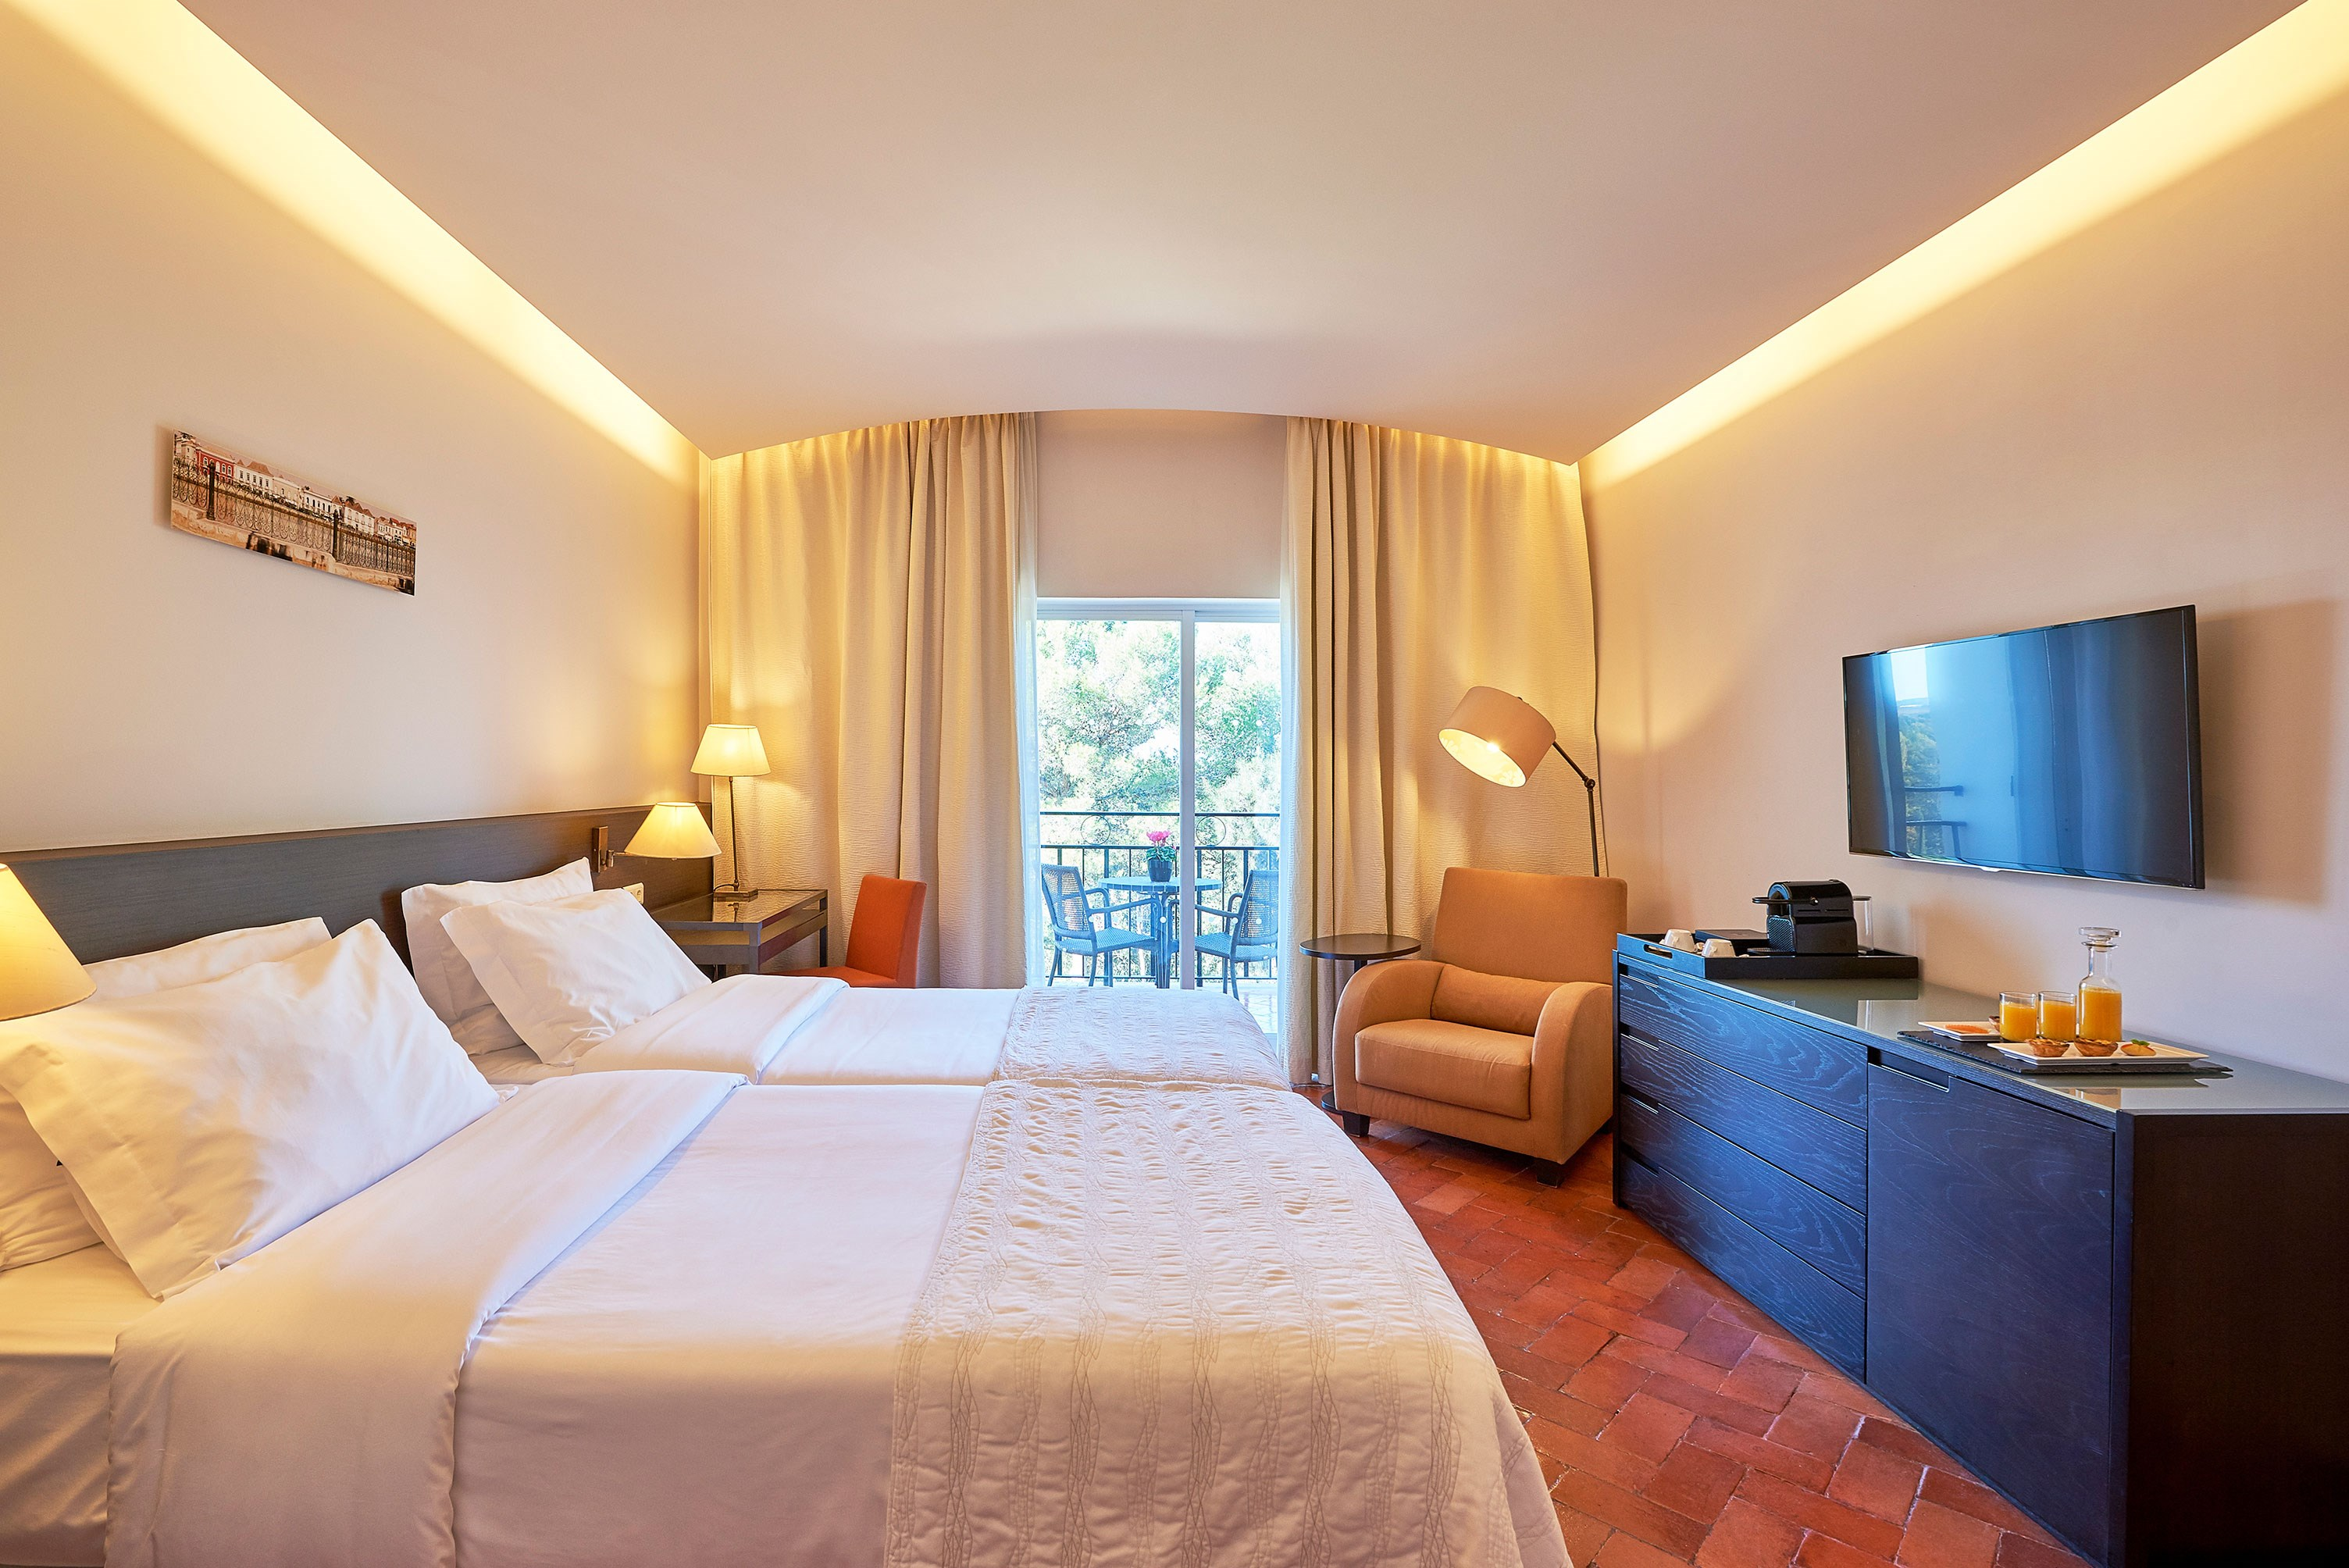 JJW PENINA HOTEL - Land View Twin Room